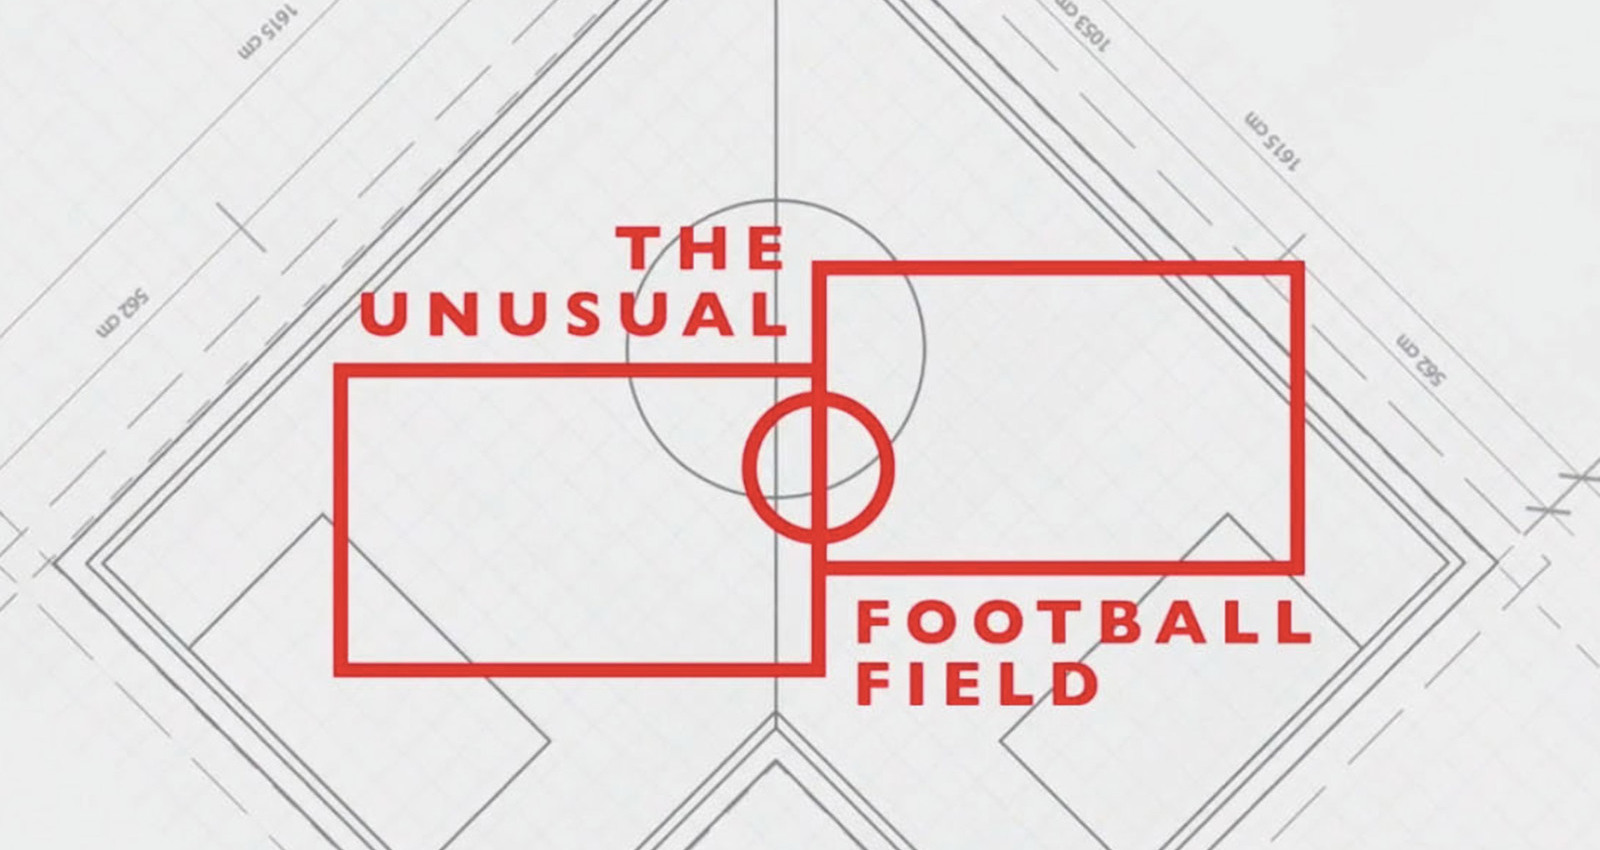 The Unusual Football Field Project : Football field that breaks through the rectangular boundary